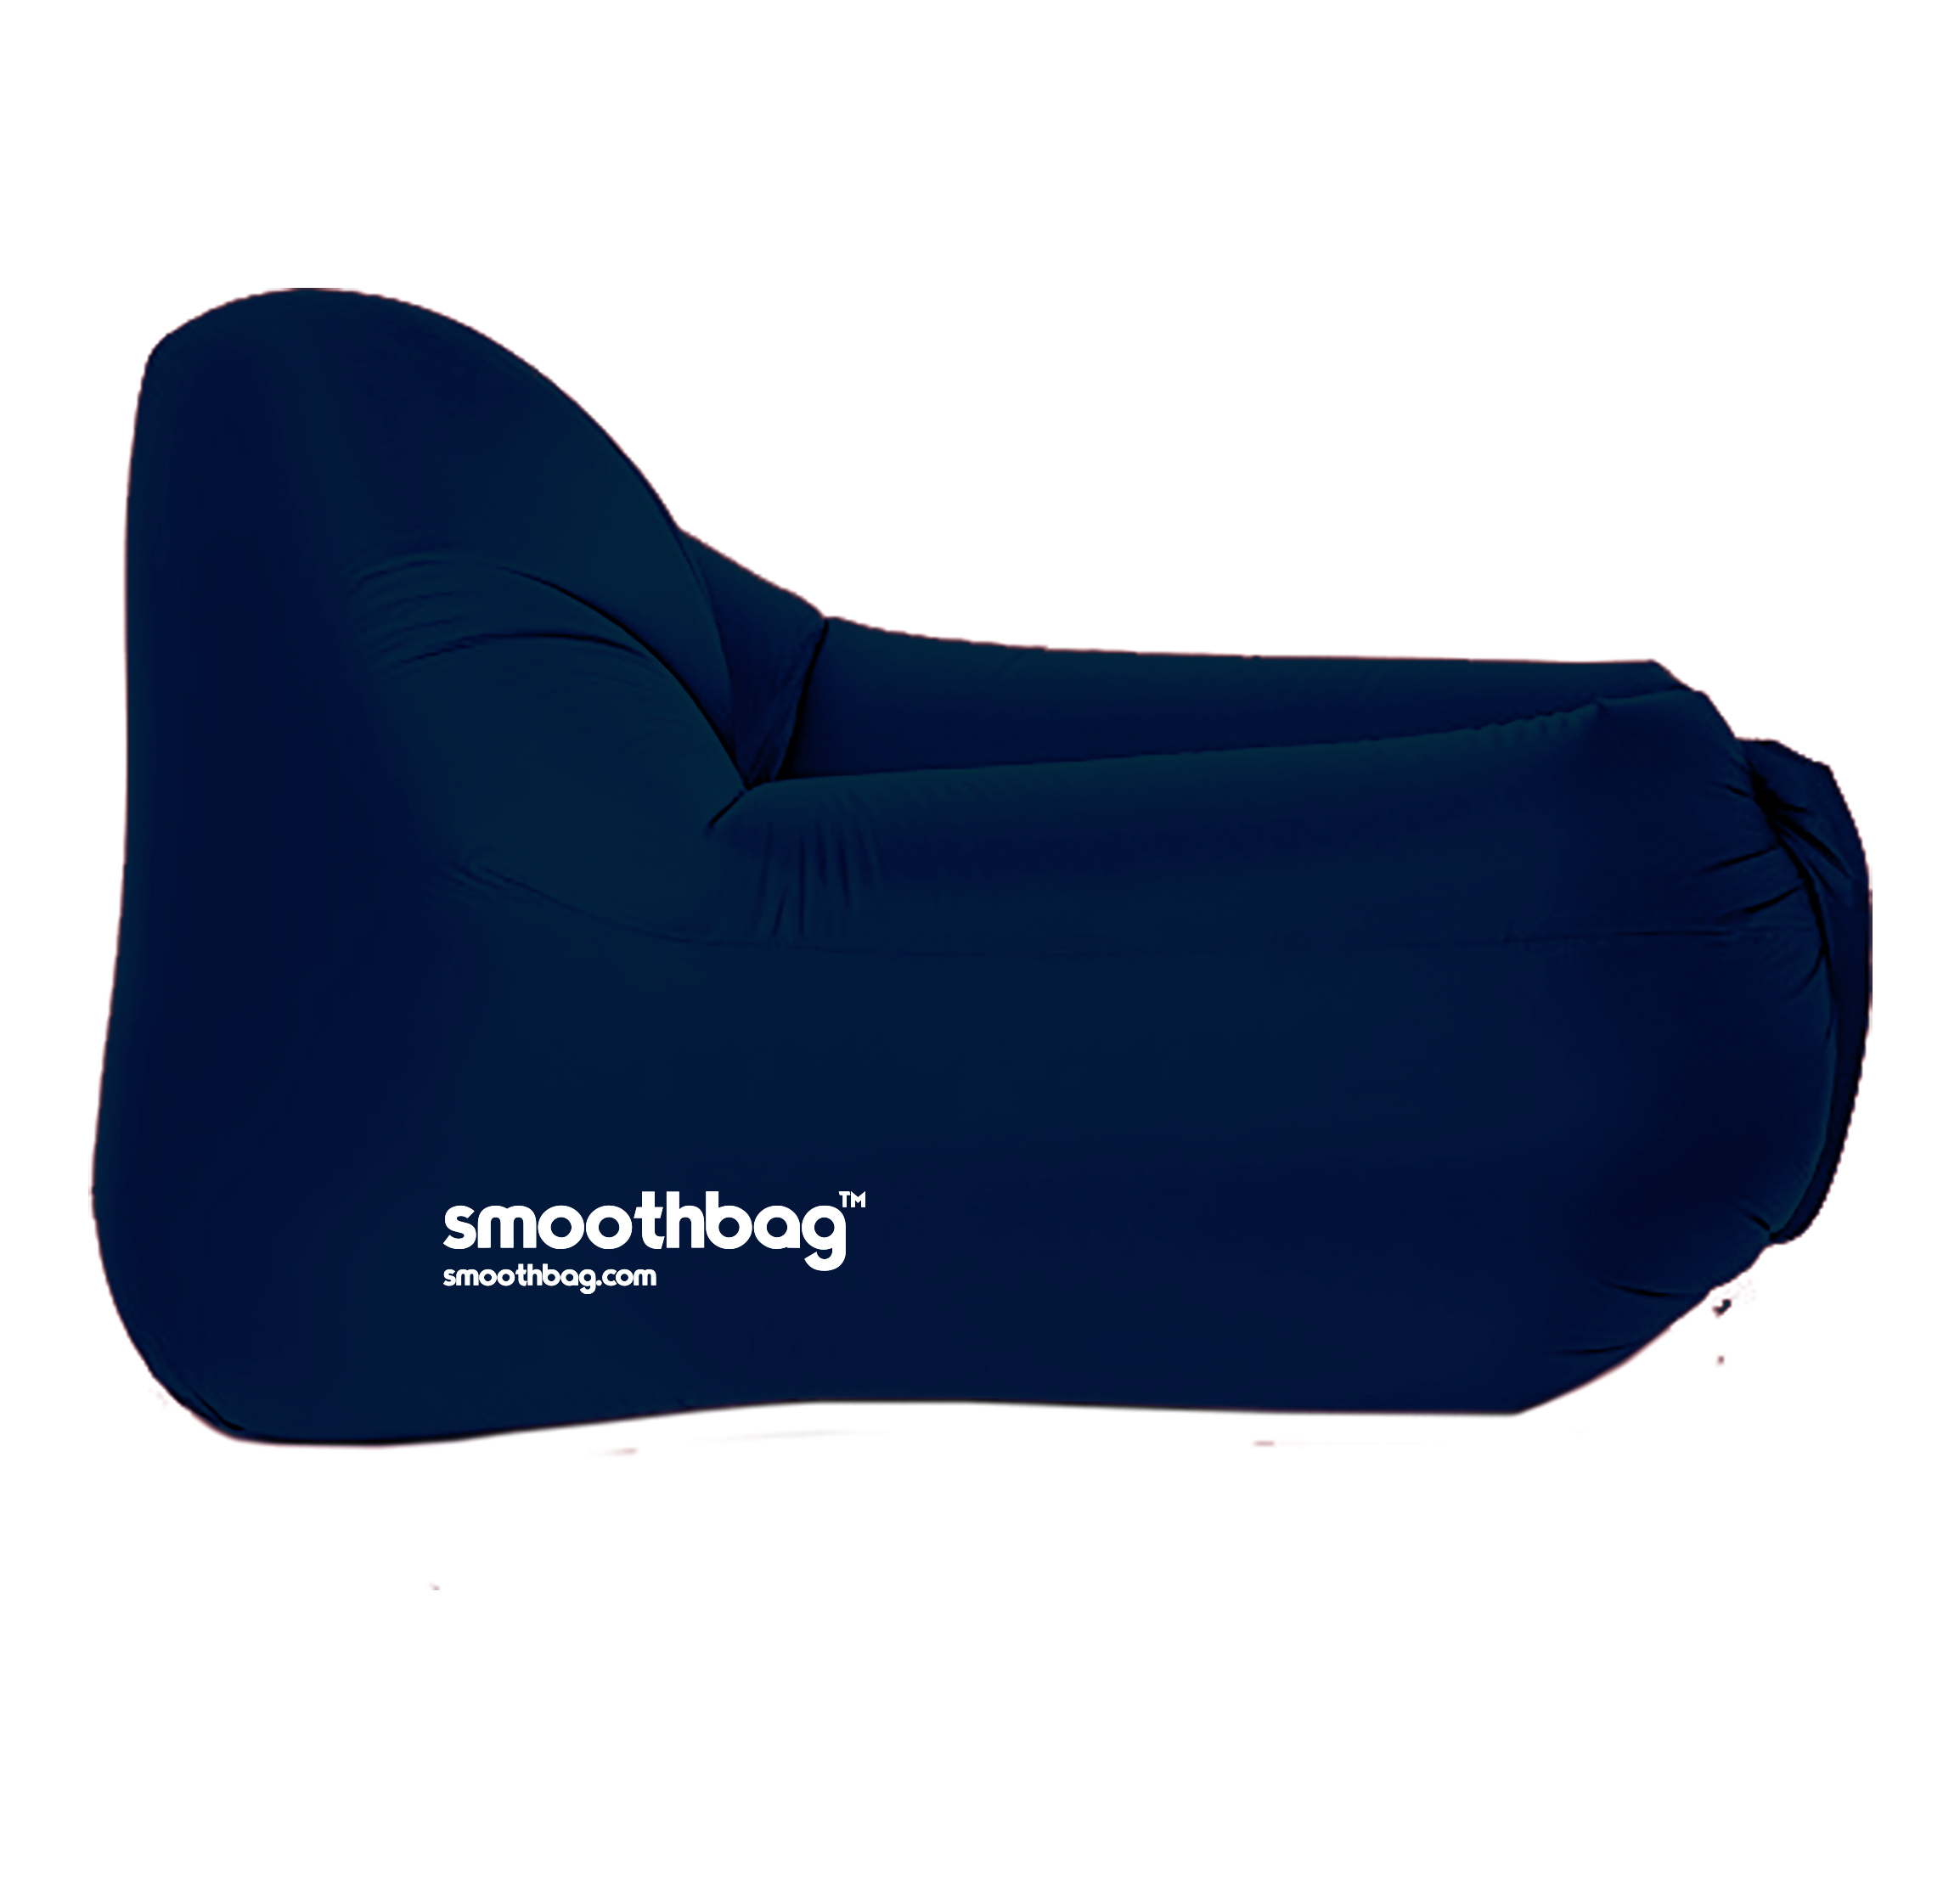 SMOOTHBAG SBCNAVY NAVY  INFLATABLE LOUNGER CHAIR